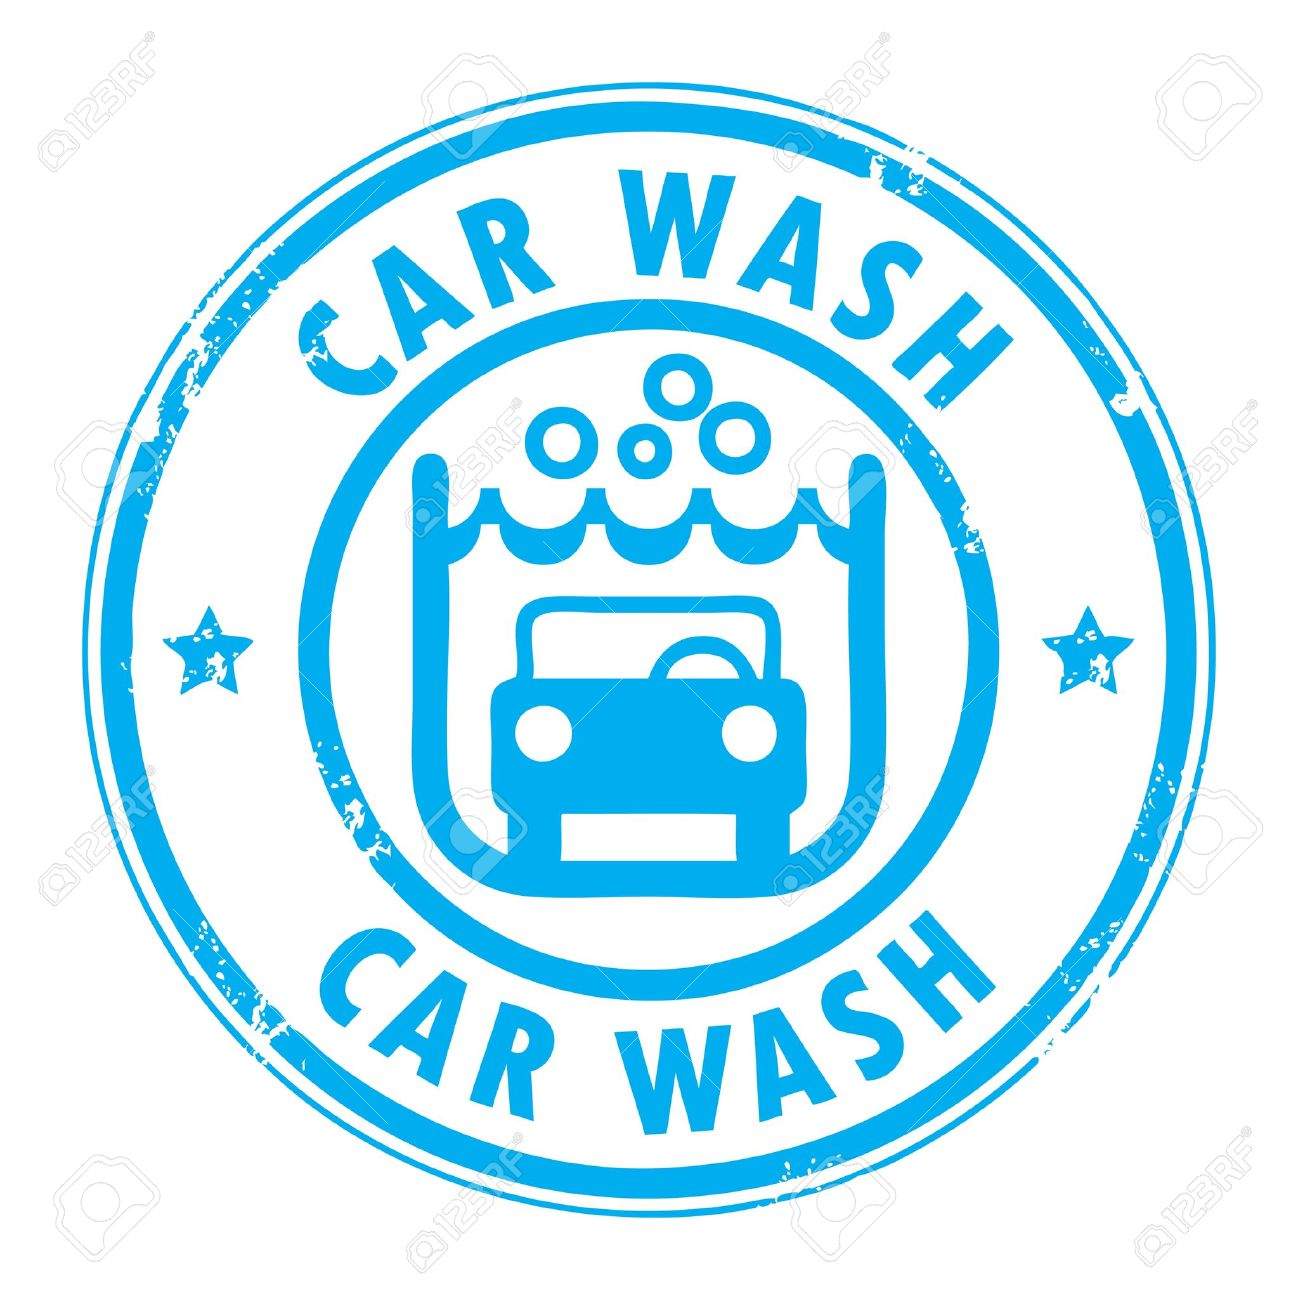 Car wash images clipart free.